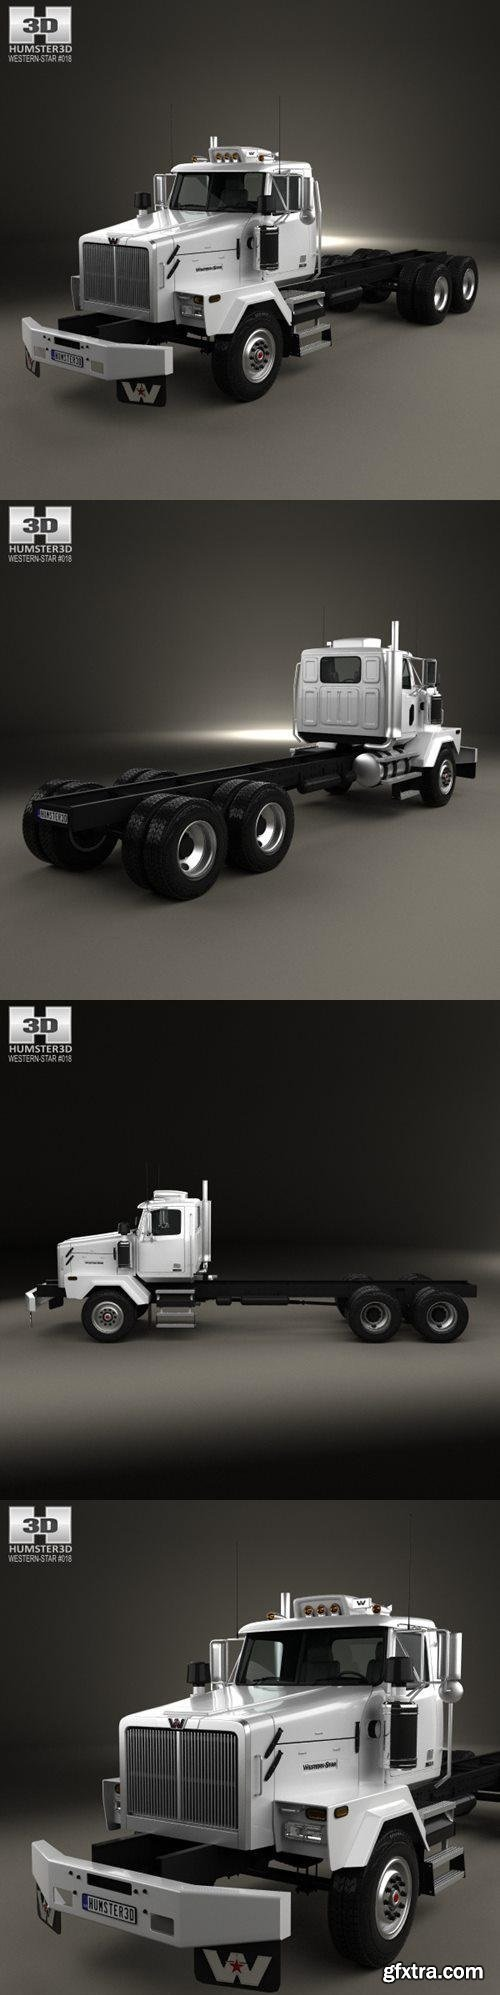 Western Star 4900 SB Day Cab Chassis Truck 2008 - 3D Model